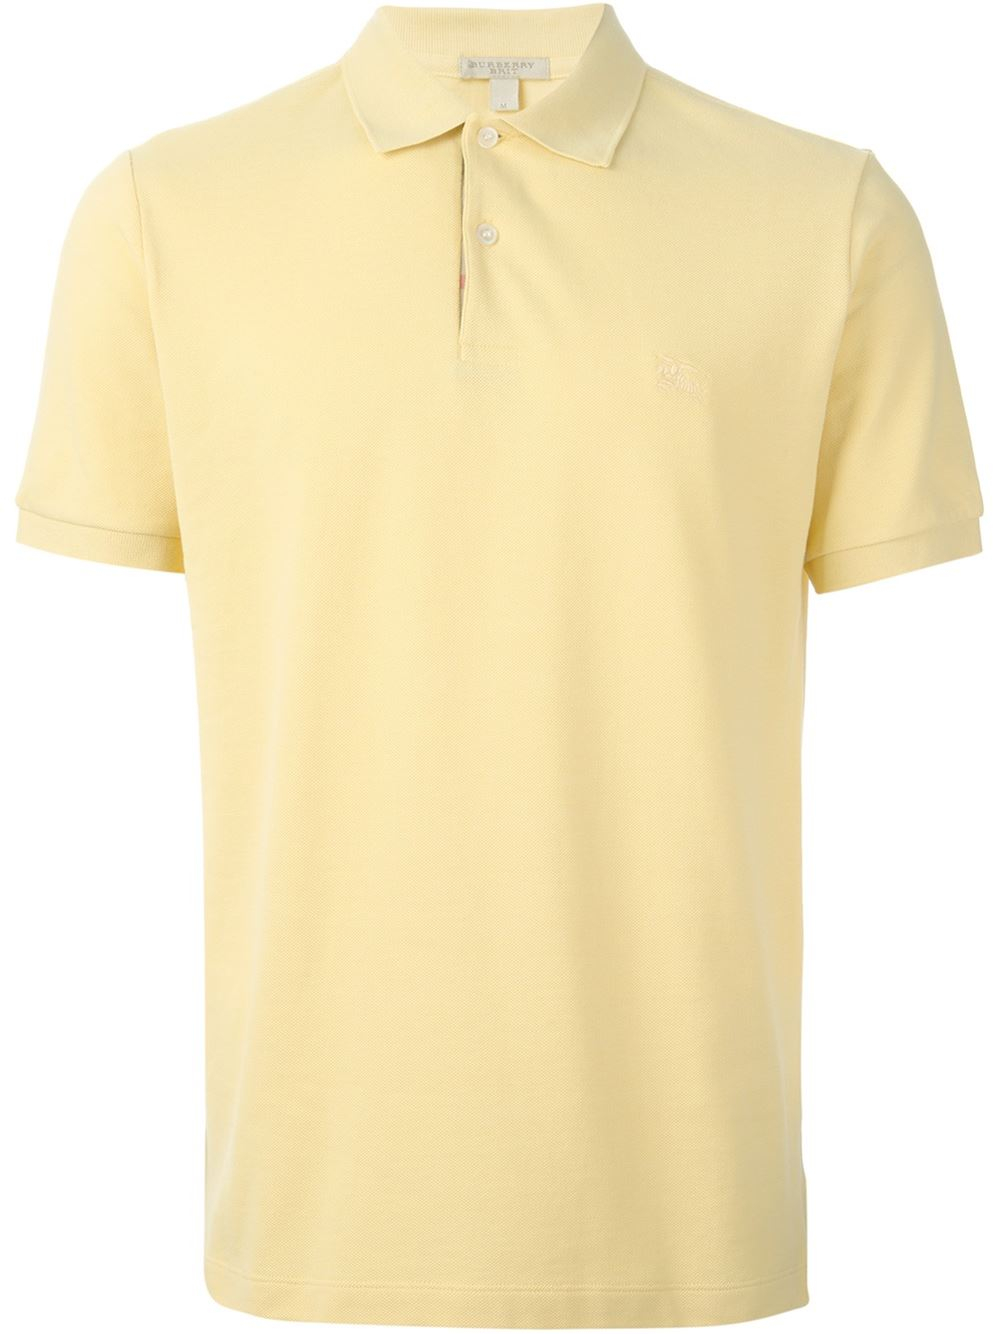 Burberry Brit Classic Polo Shirt In Yellow For Men Yellow